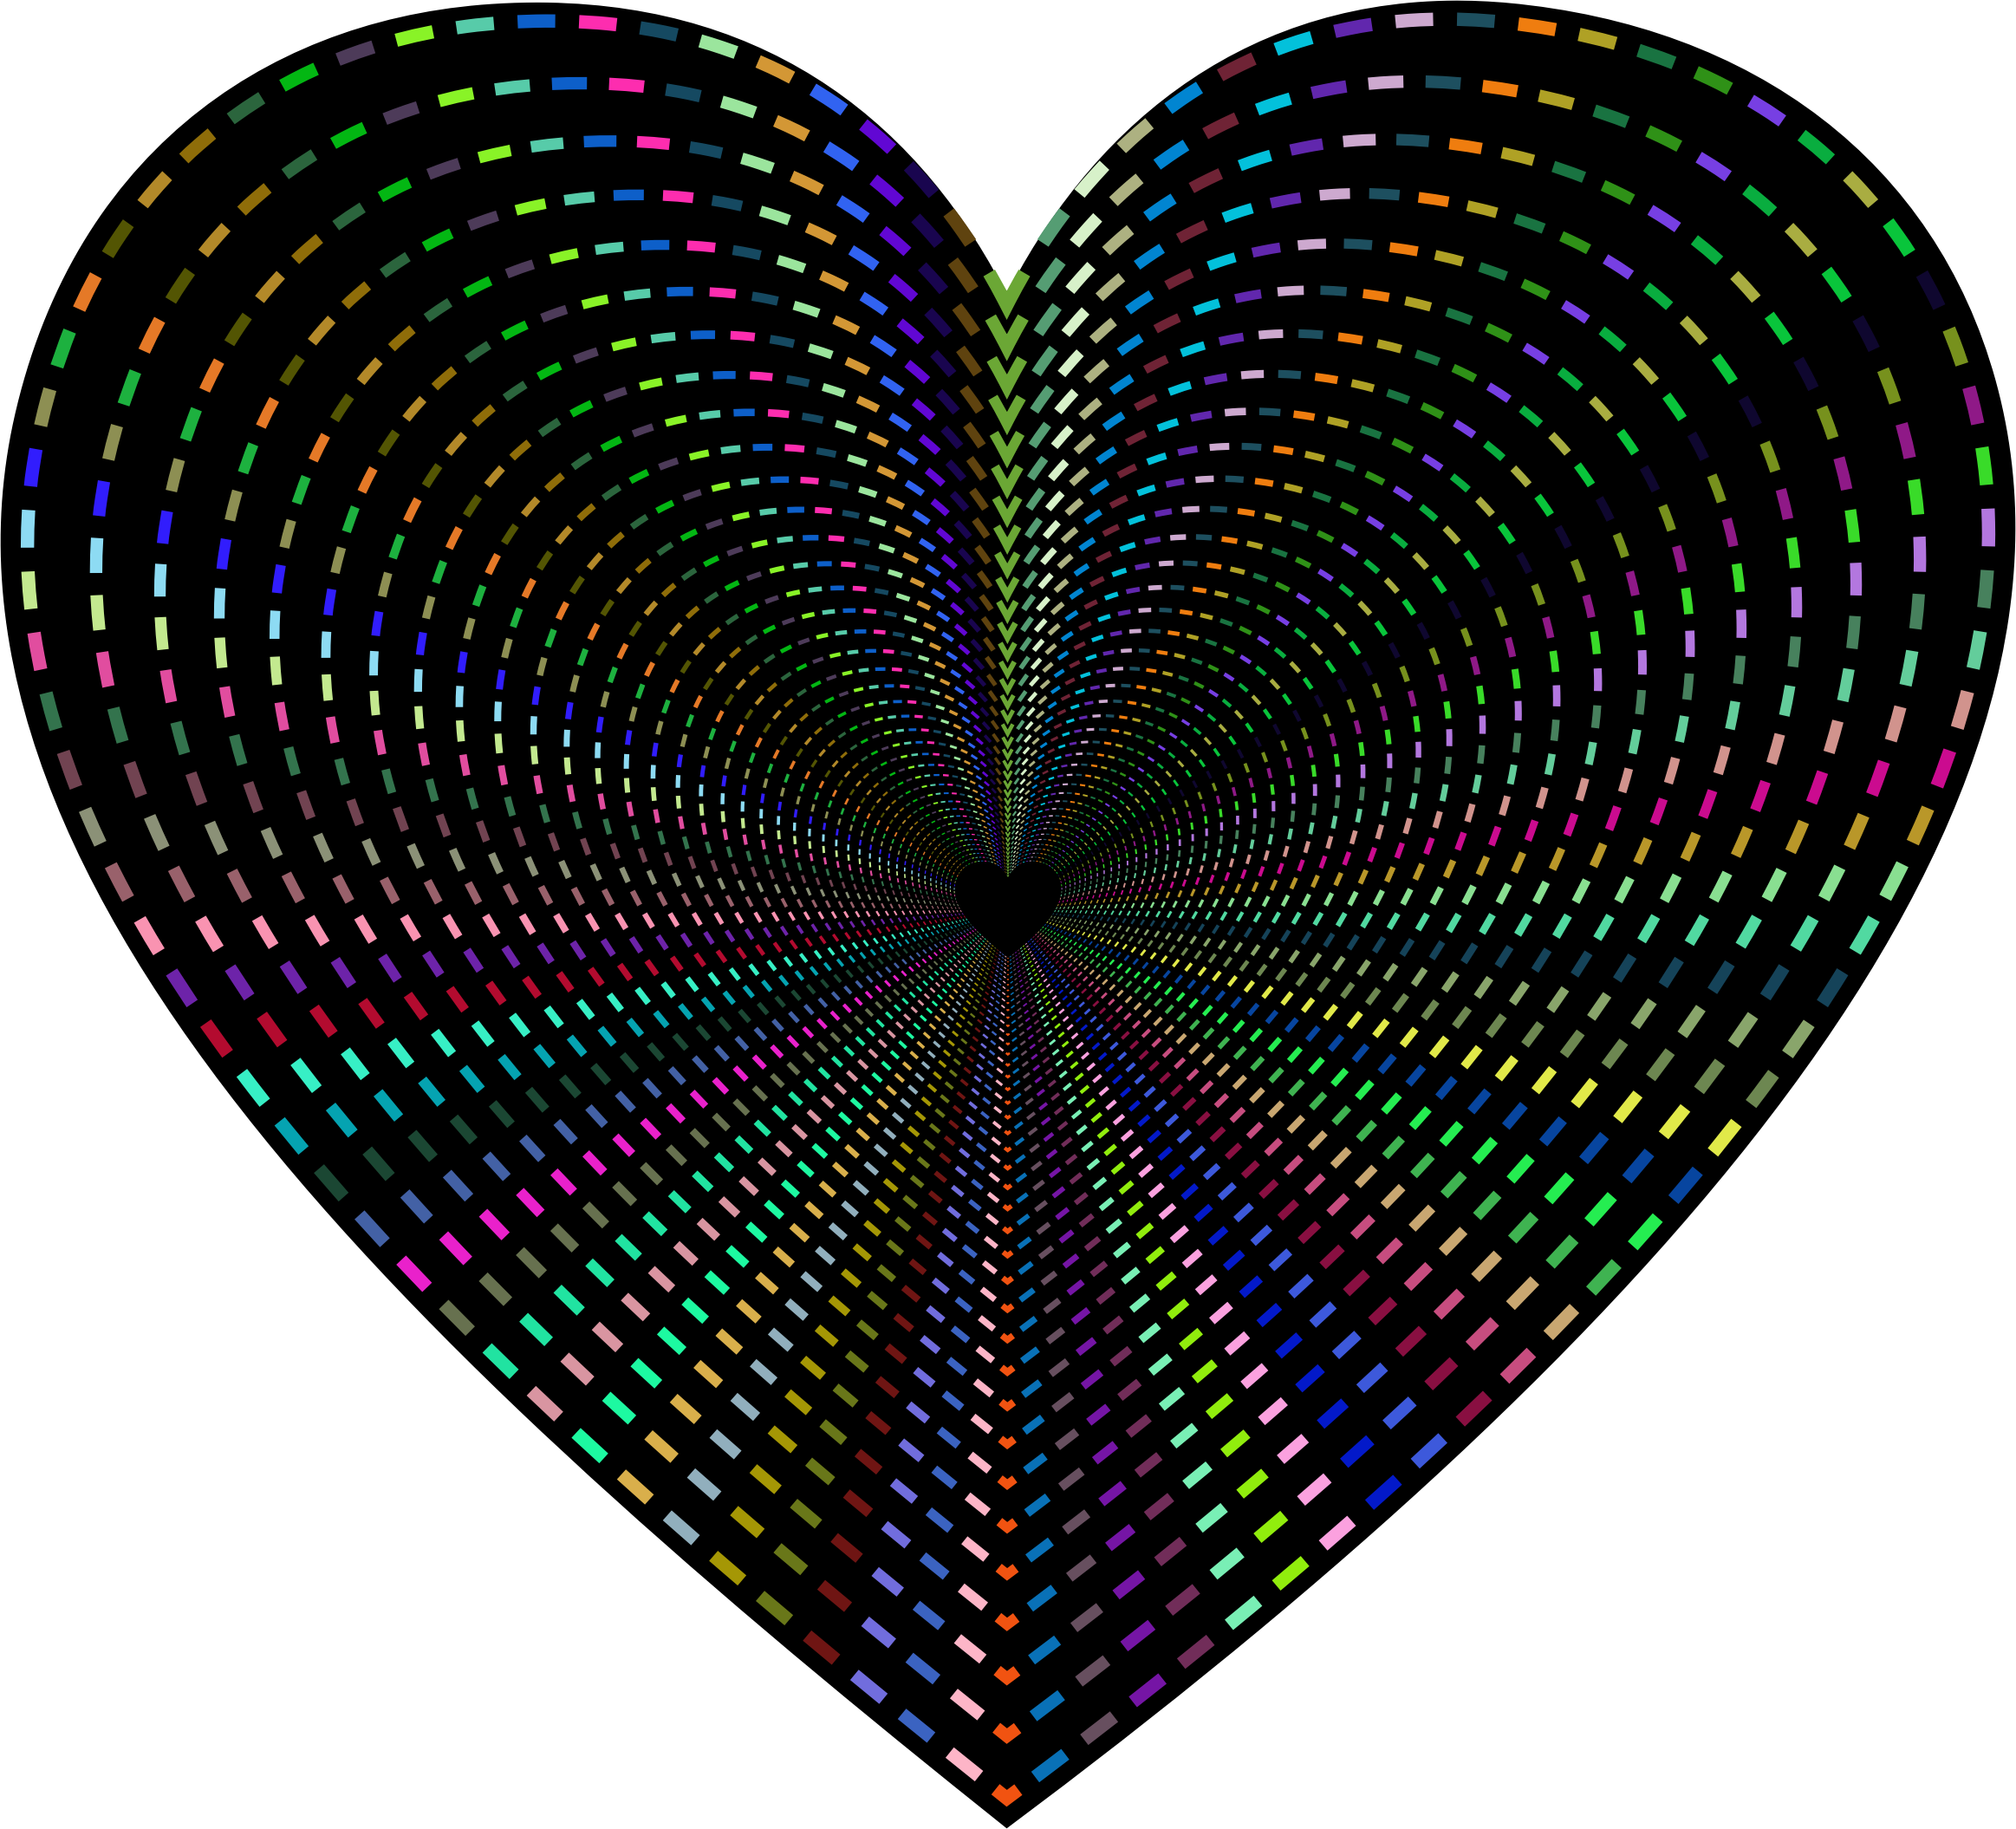 Dashed heart clipart graphic royalty free download Clipart - Dashed Line Art Heart Tunnel graphic royalty free download